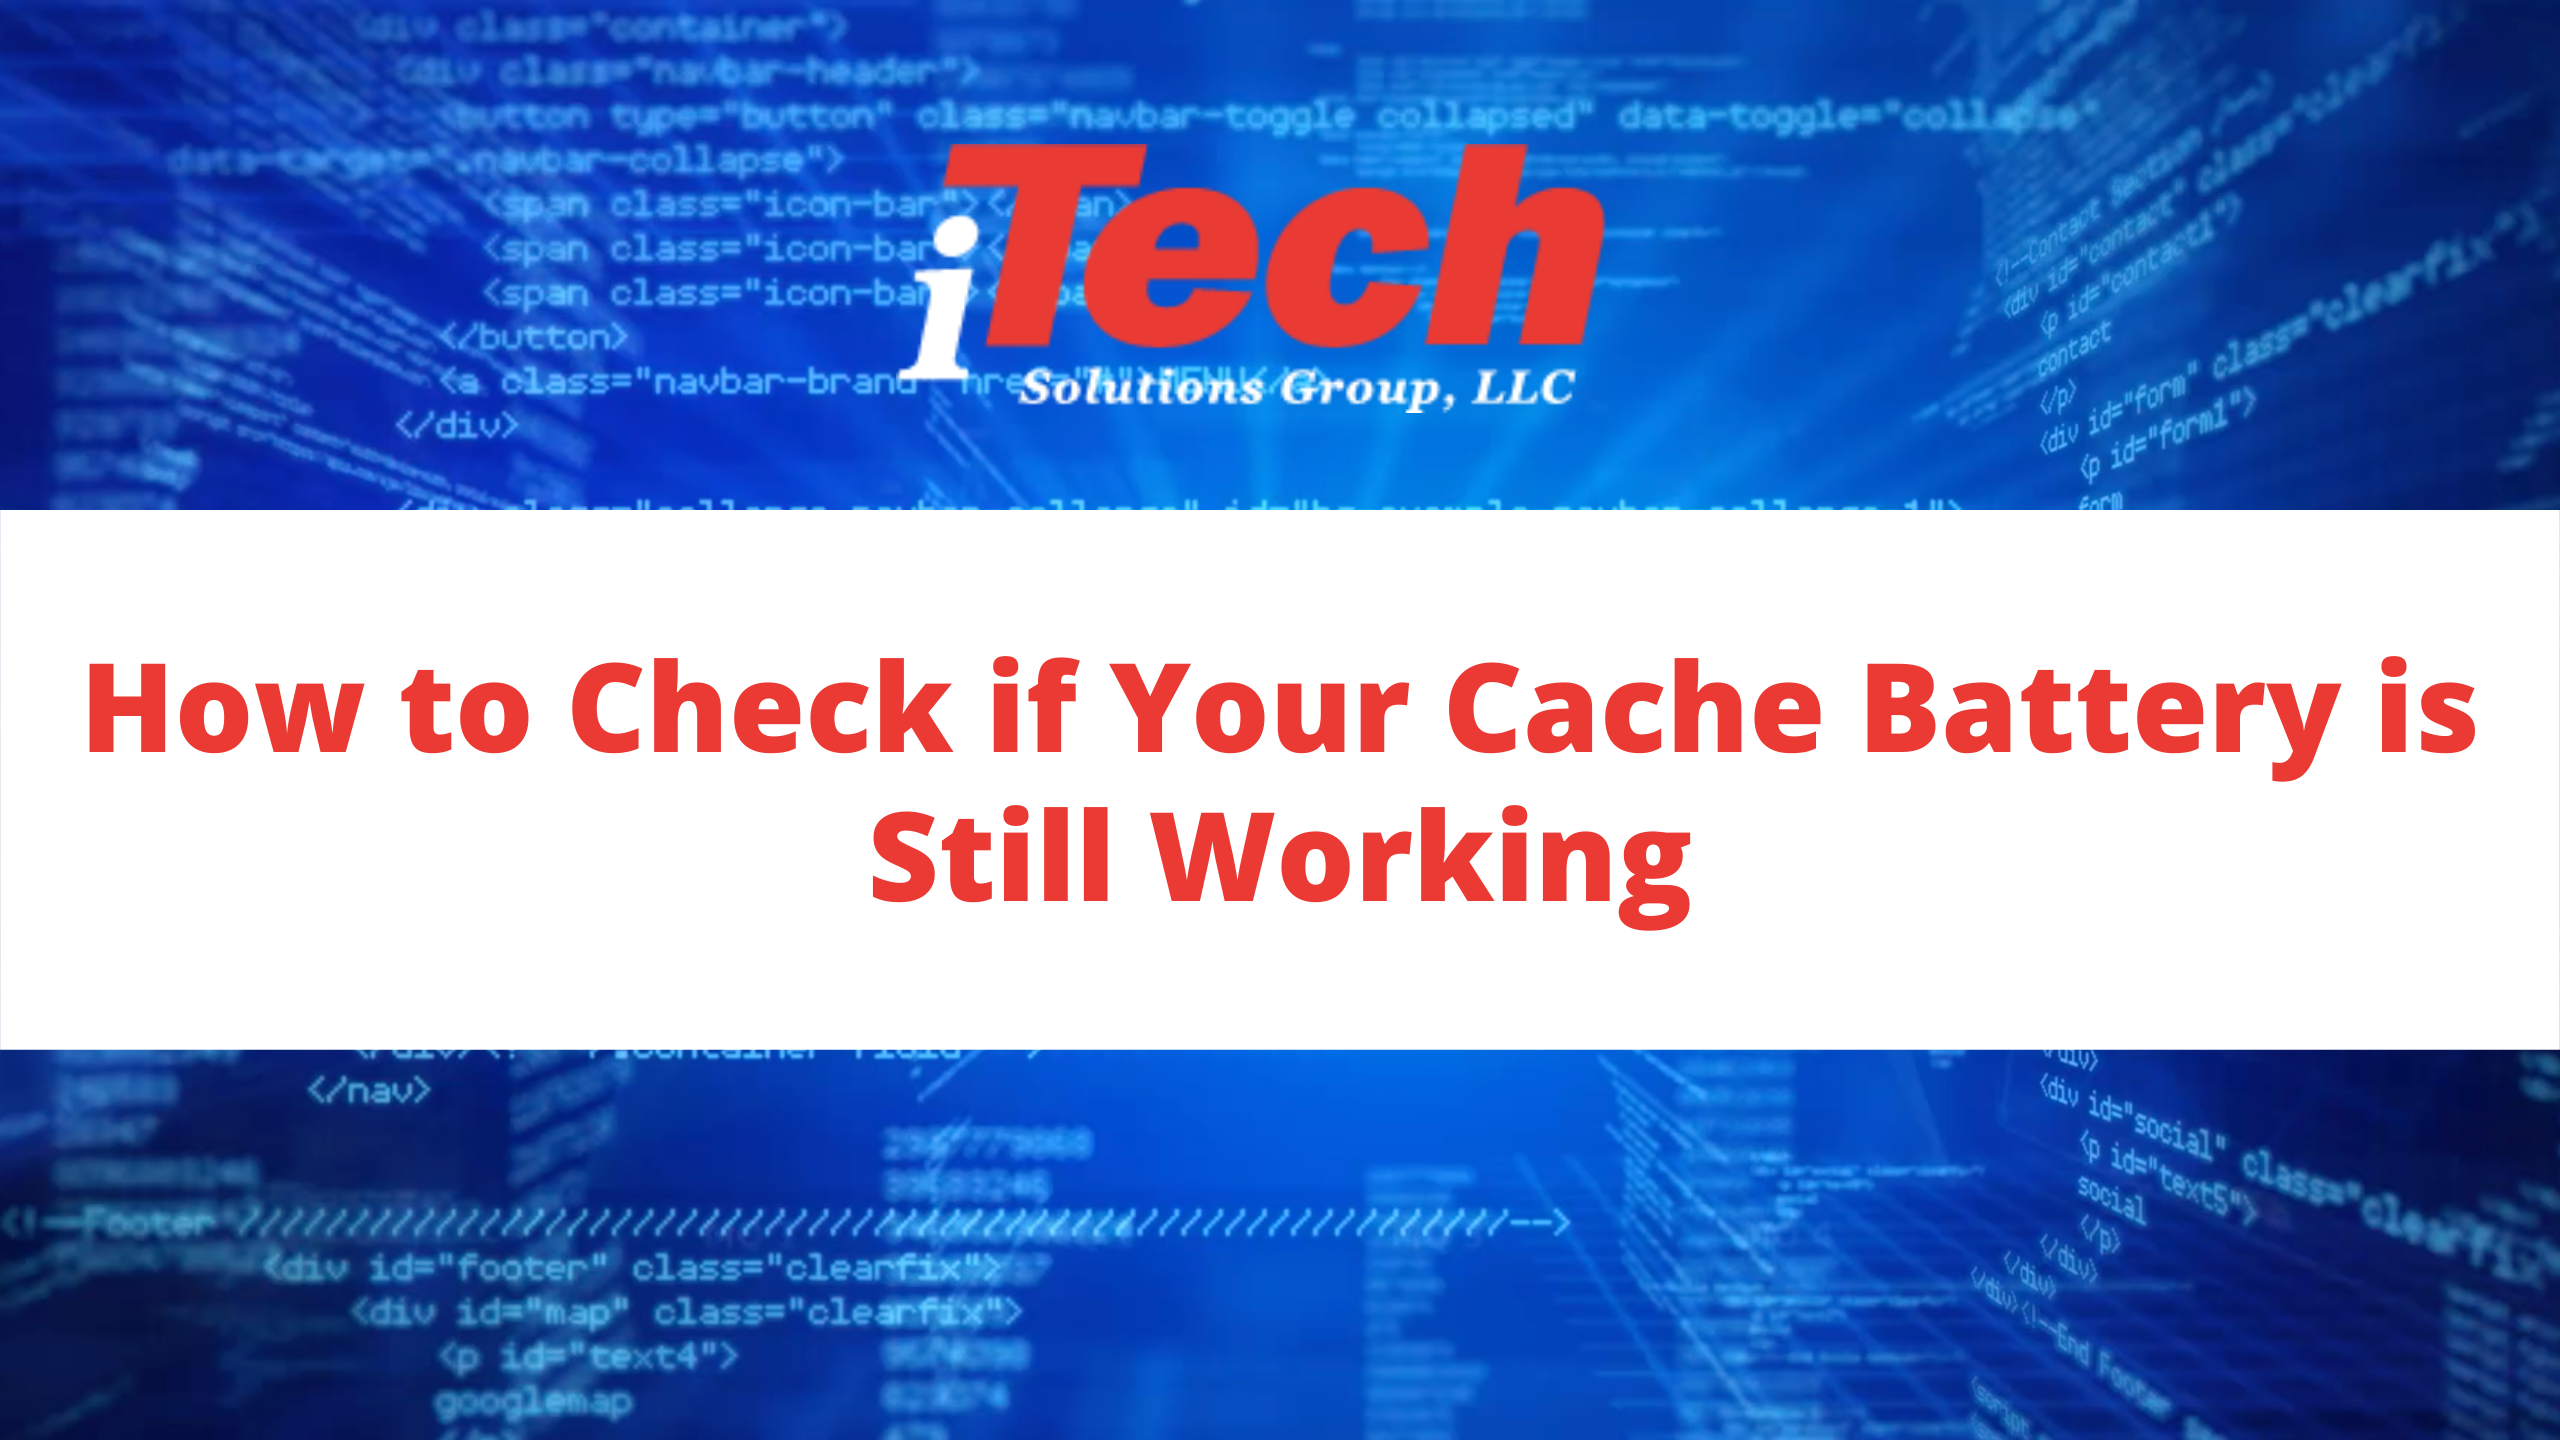 How to Check if Your Cache Battery is Still Working